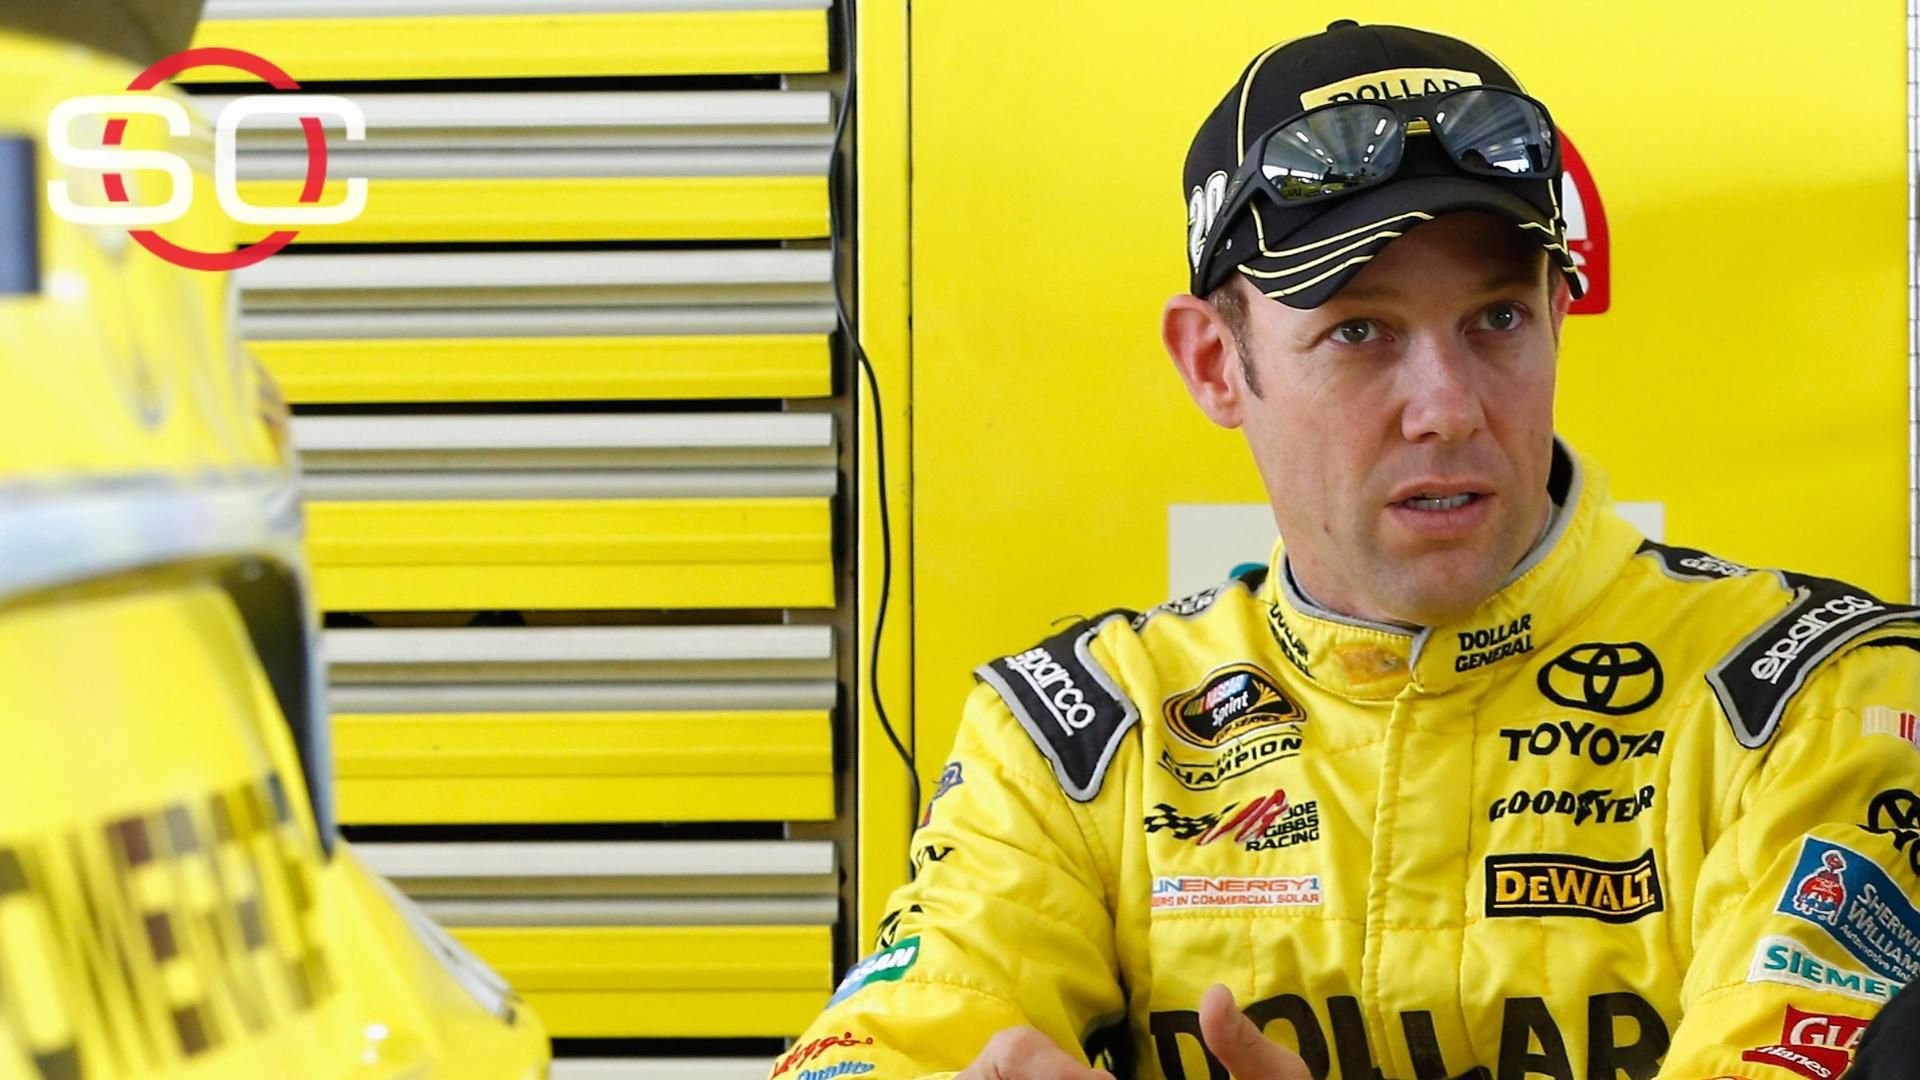 Kenseth meets with Logano before return